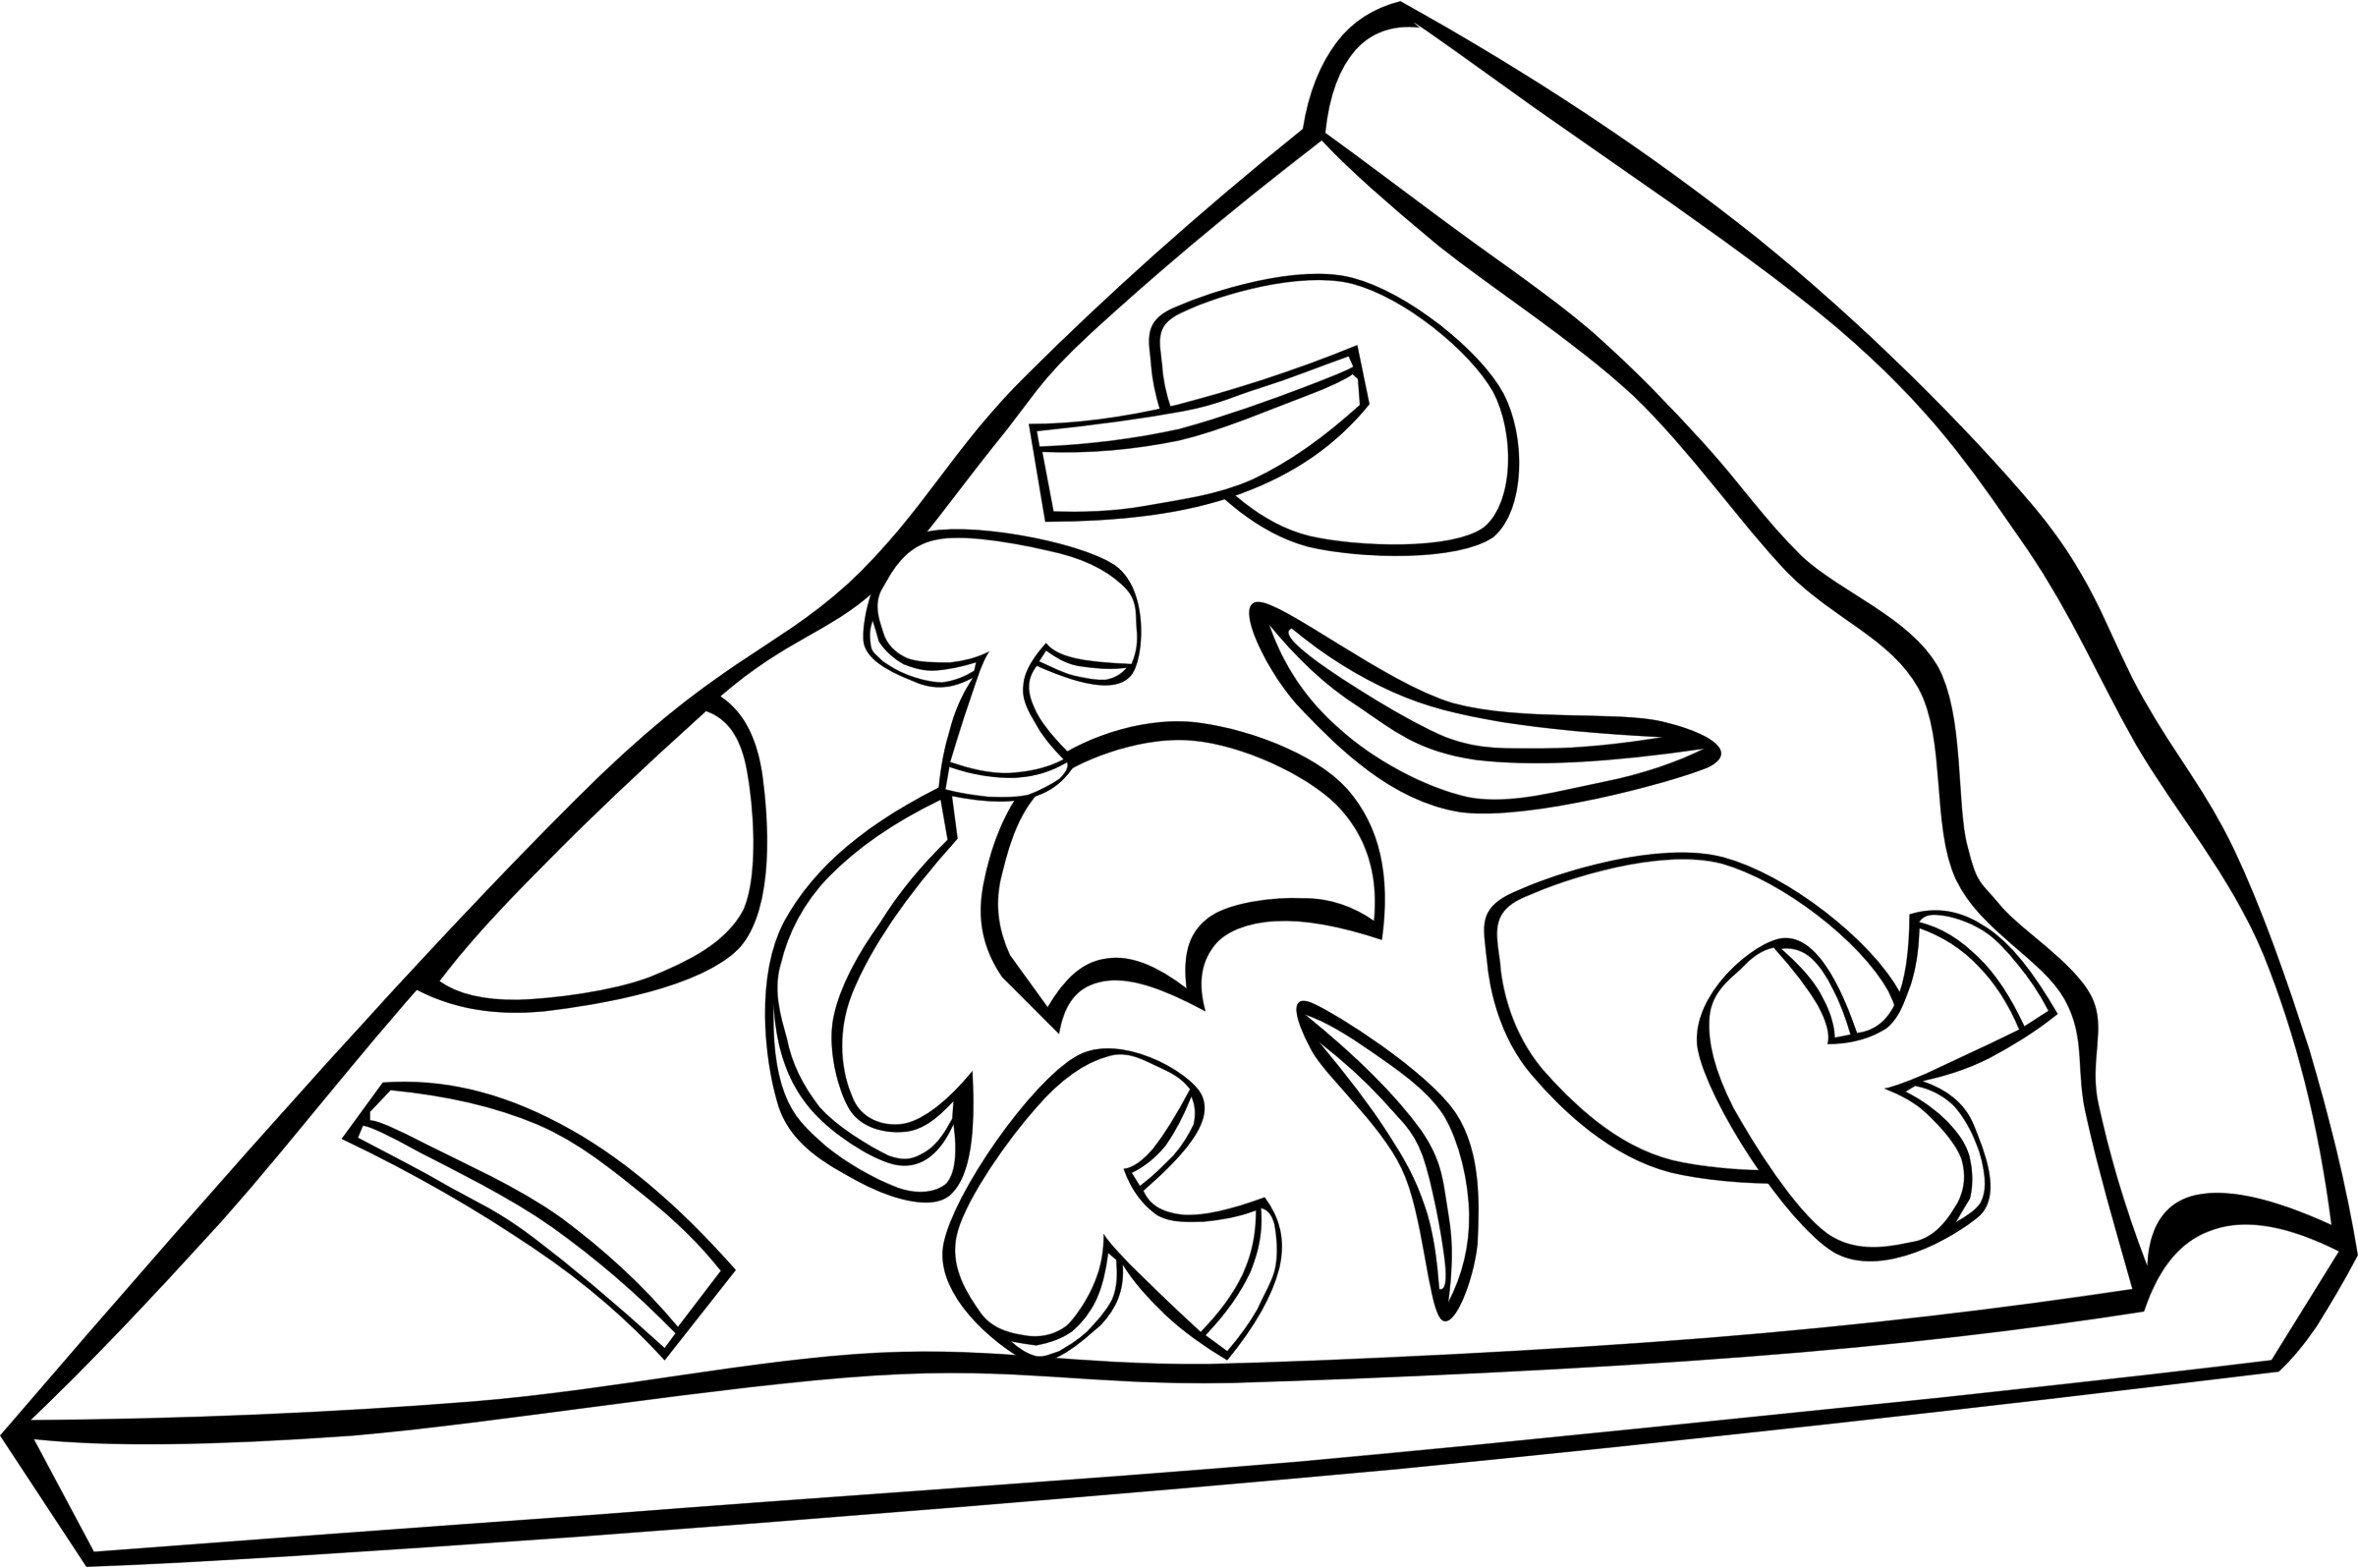 food drive clipart black and white Clipground